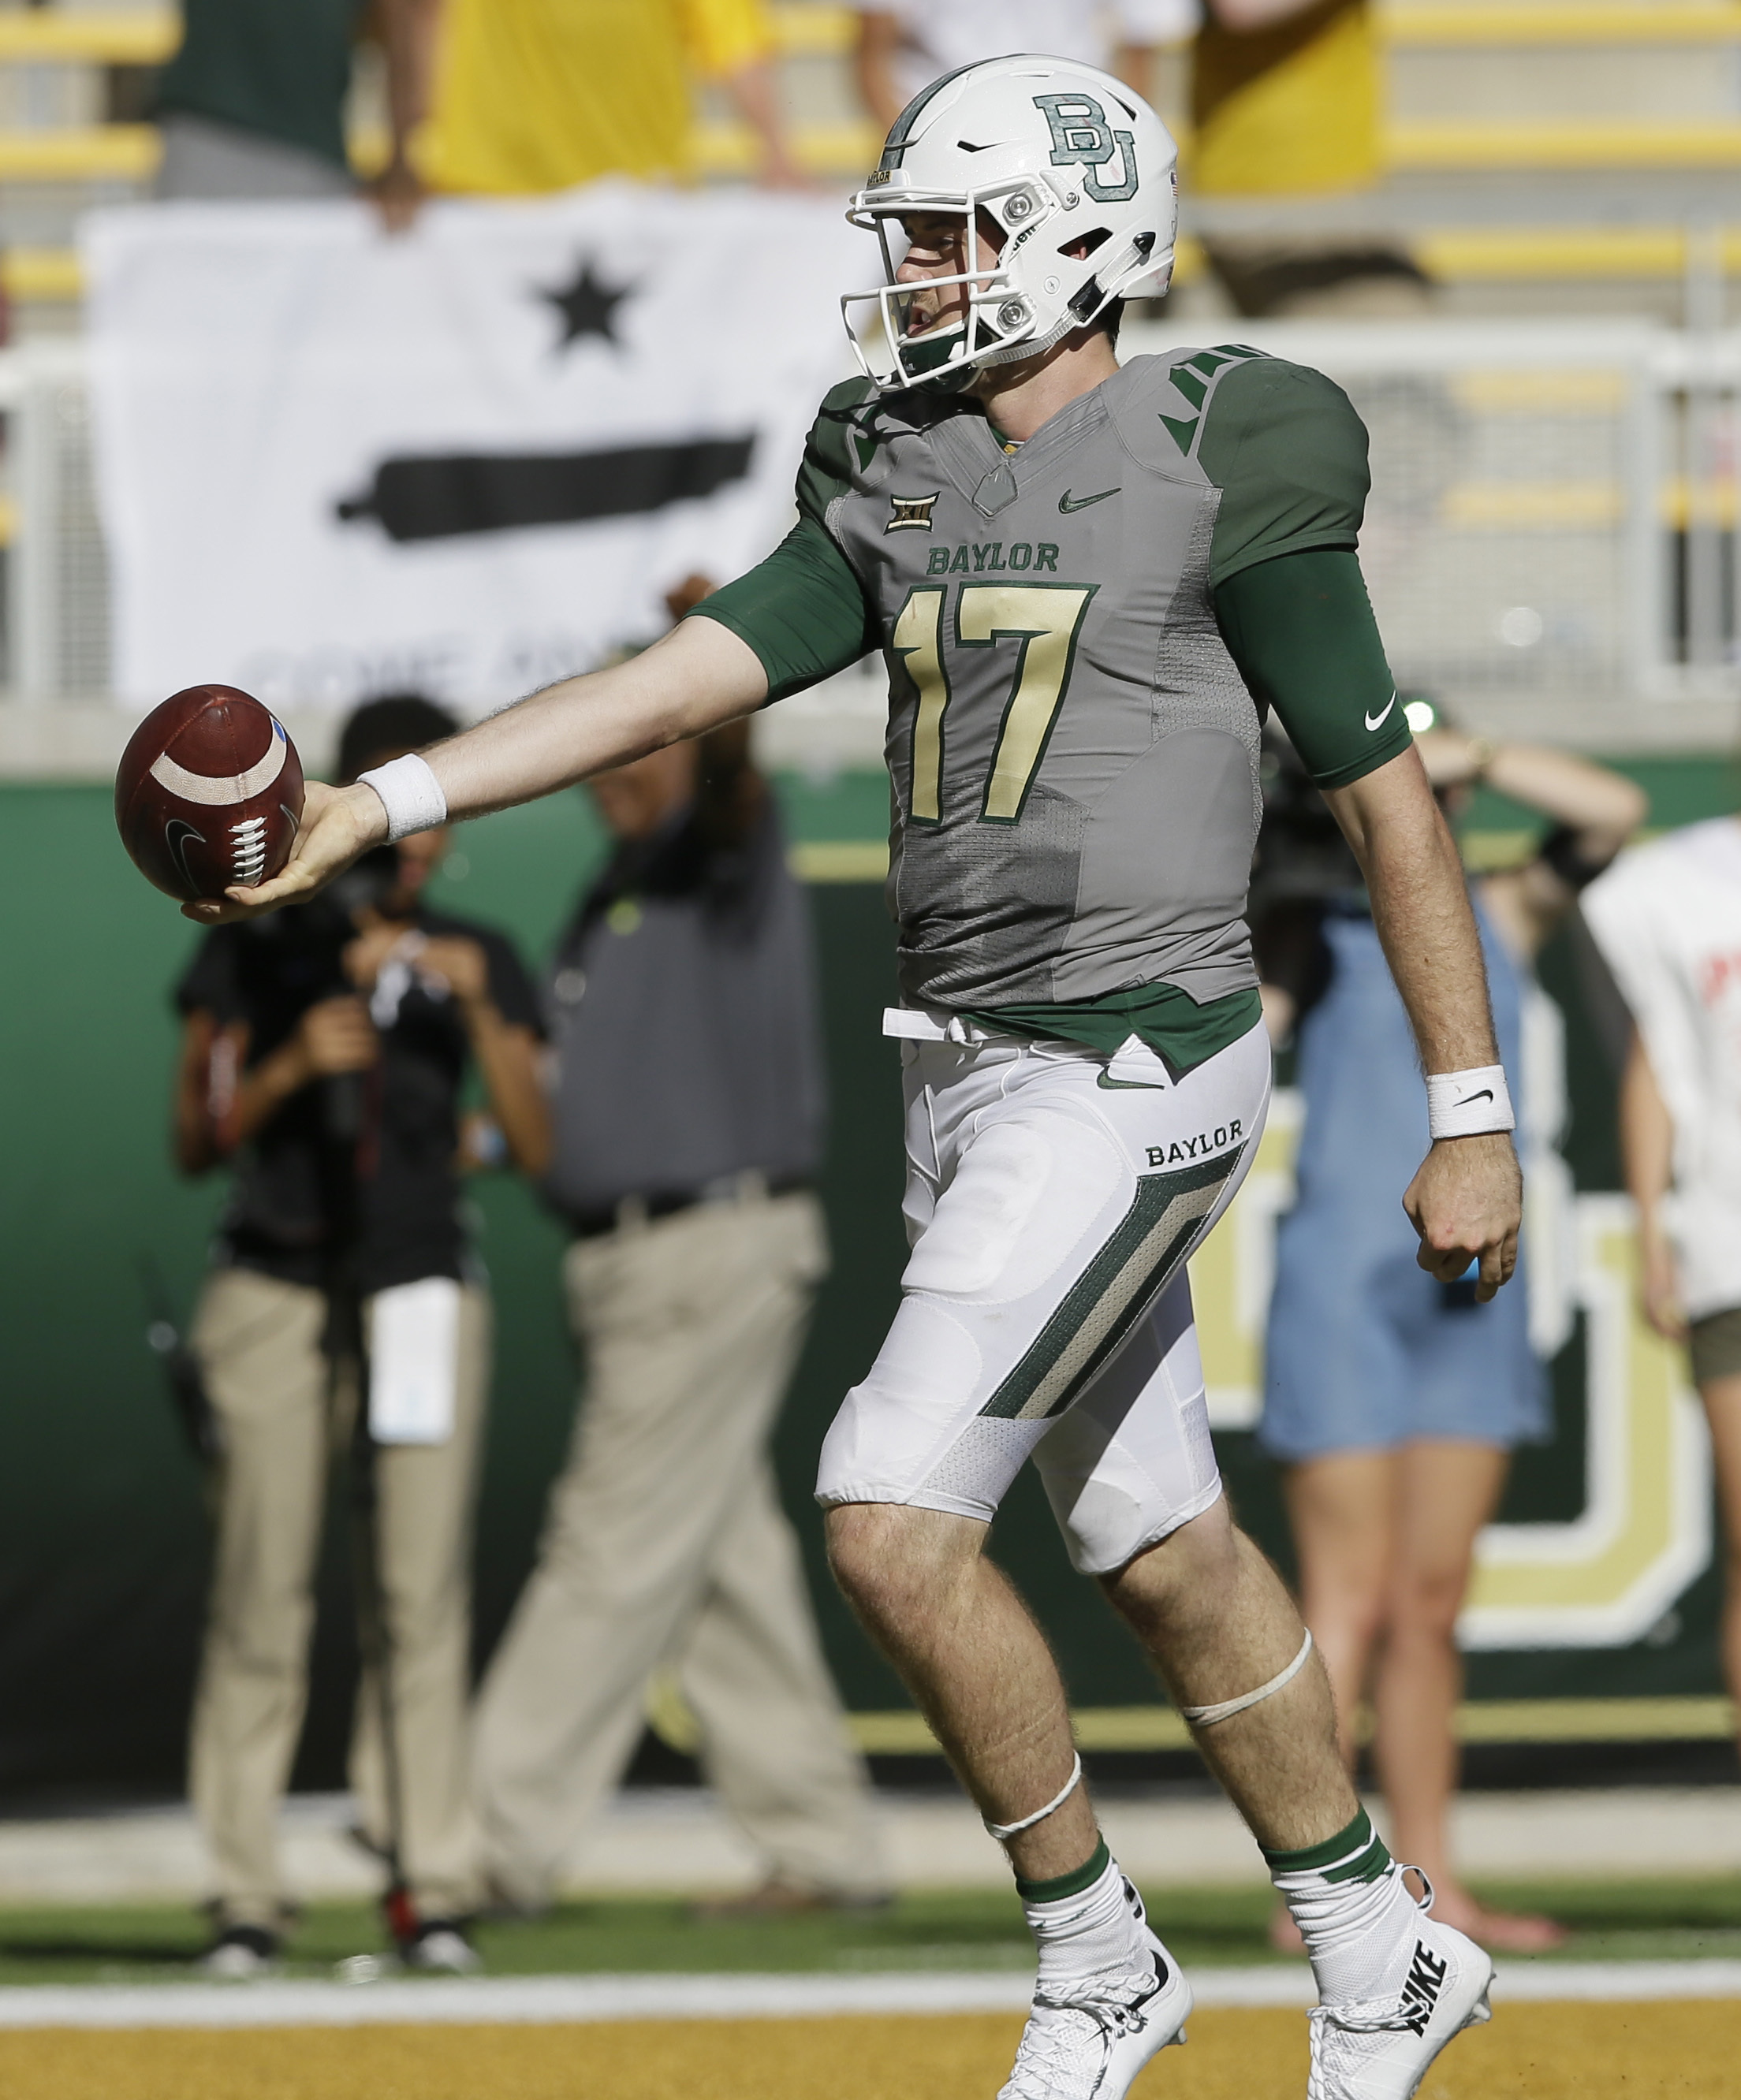 Baylor quarterback Seth Russell (17) scores a touchdown during the second half of an NCAA college football game against SMU, Saturday, Sept. 10, 2016, in Waco, Texas. (AP Photo/LM Otero)